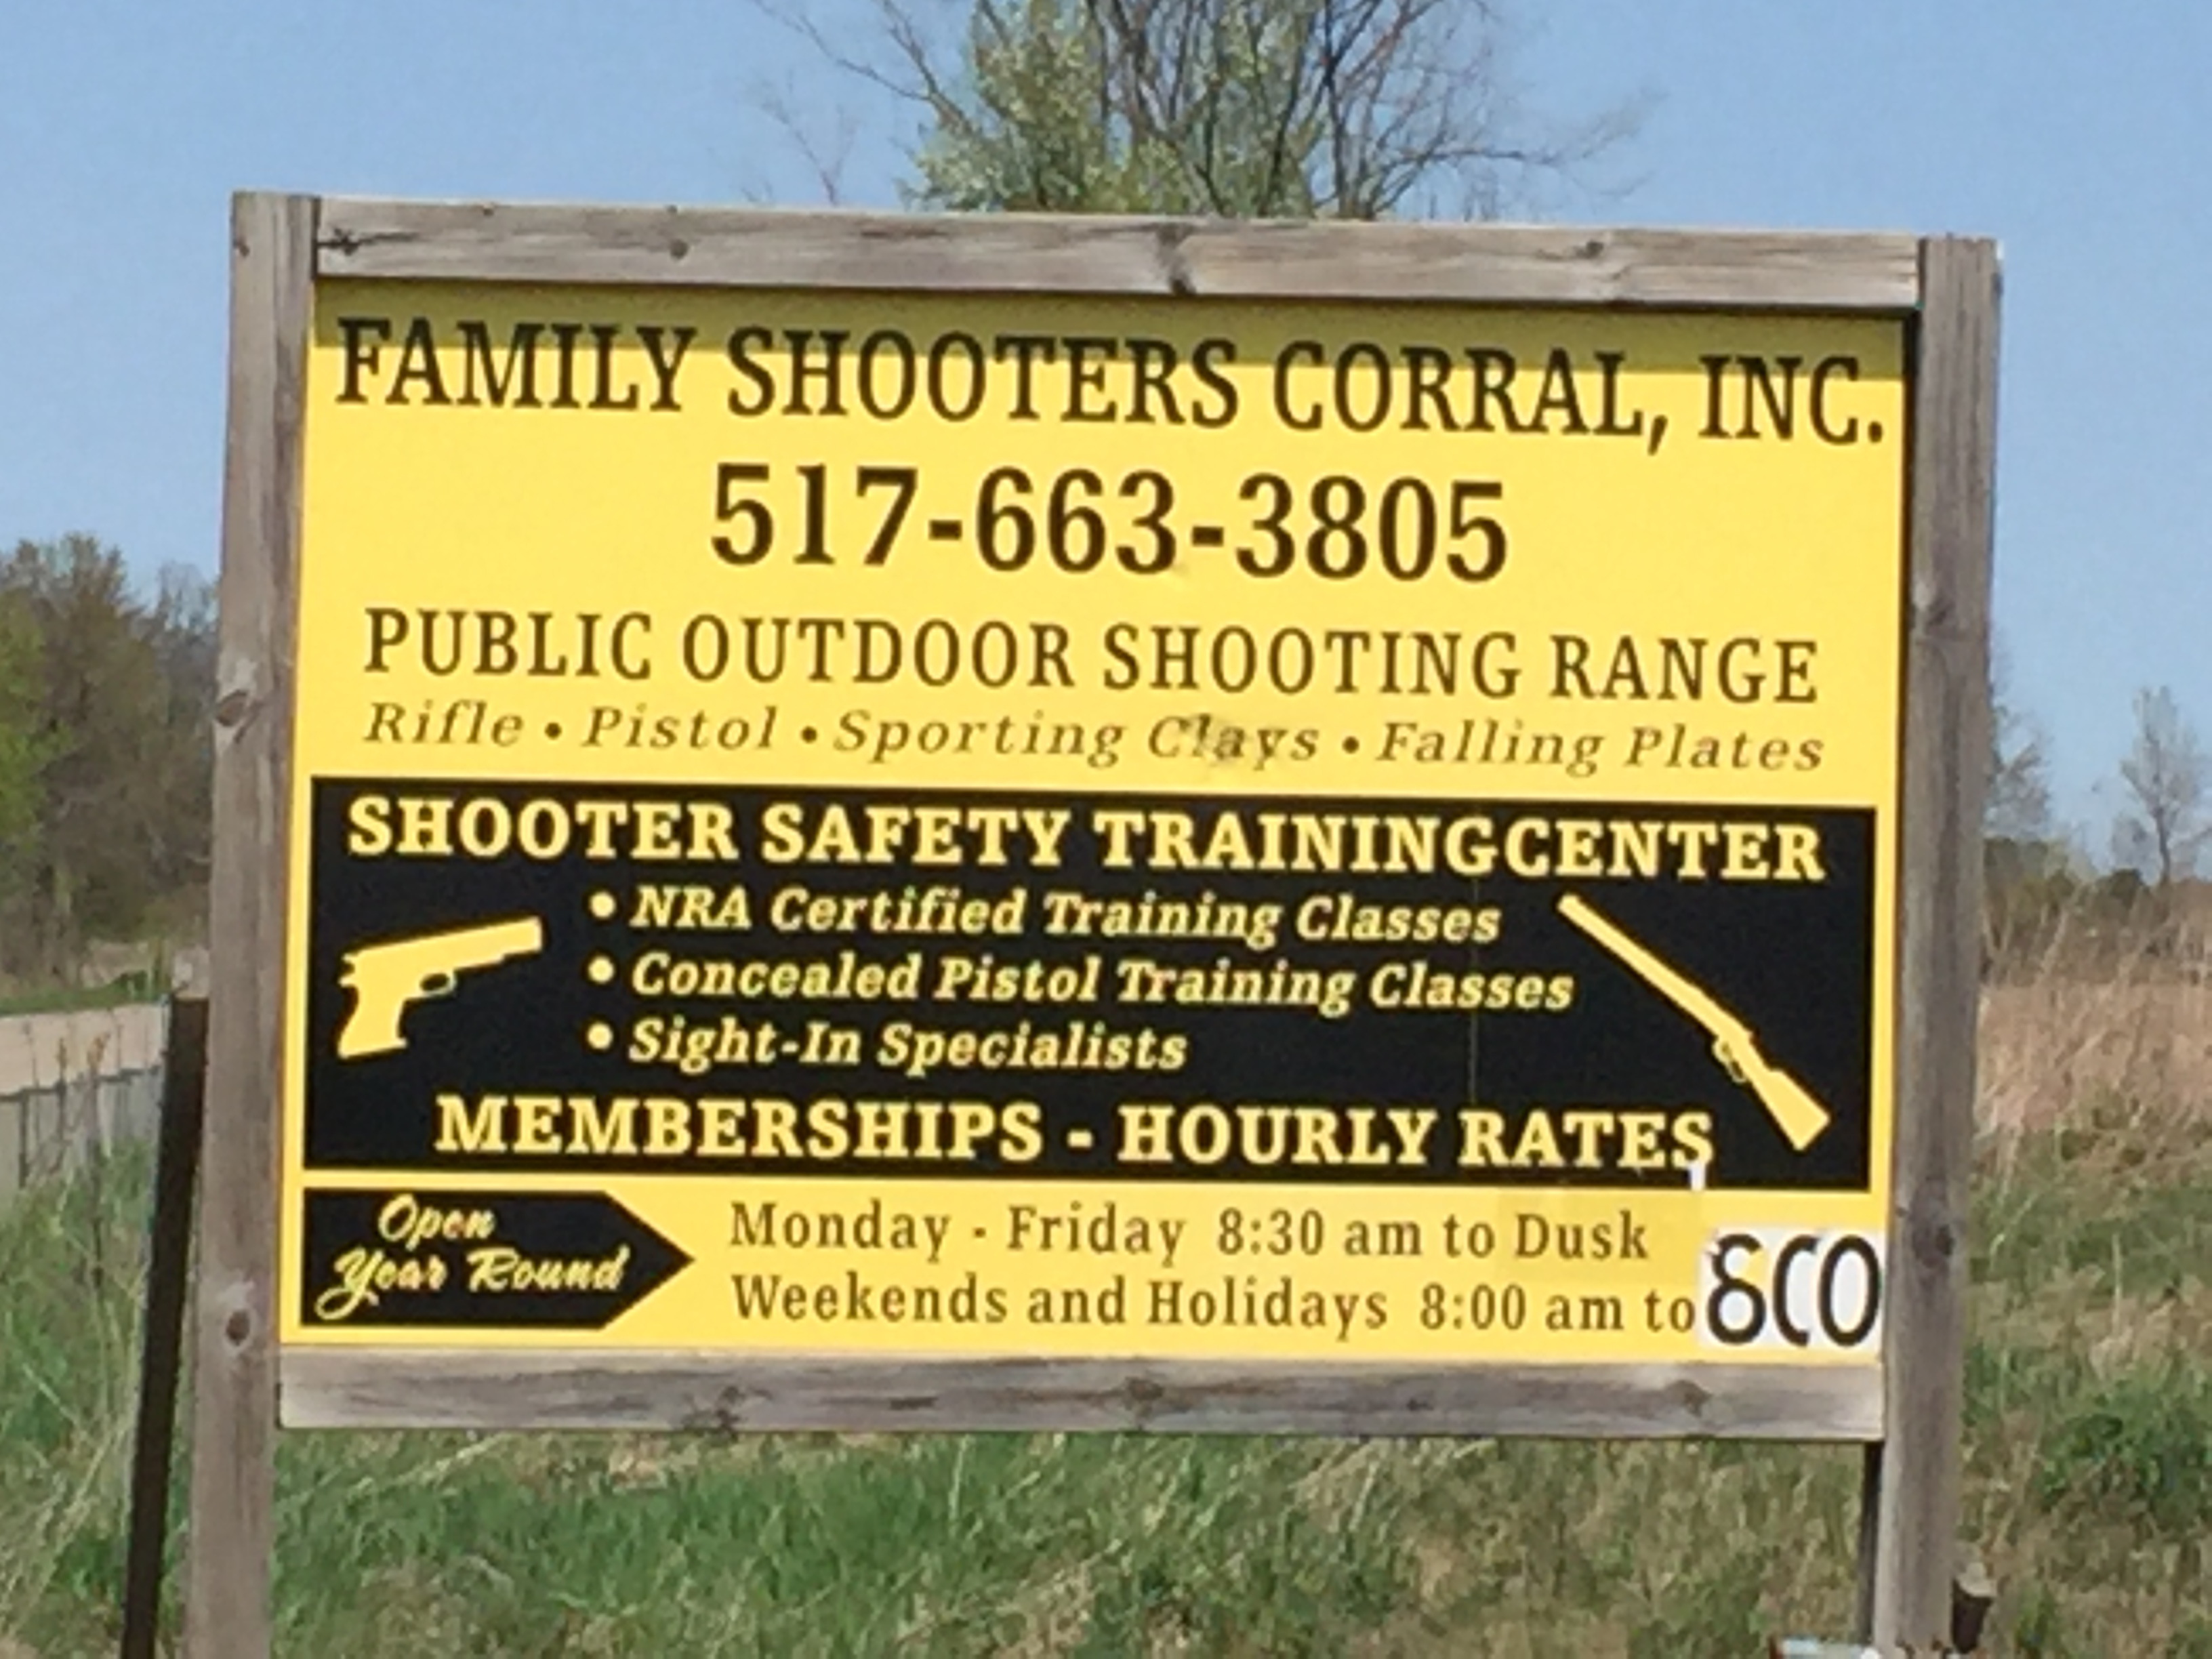 Family Shooters Corral - Eaton Rapids Michigan - Shooting Range